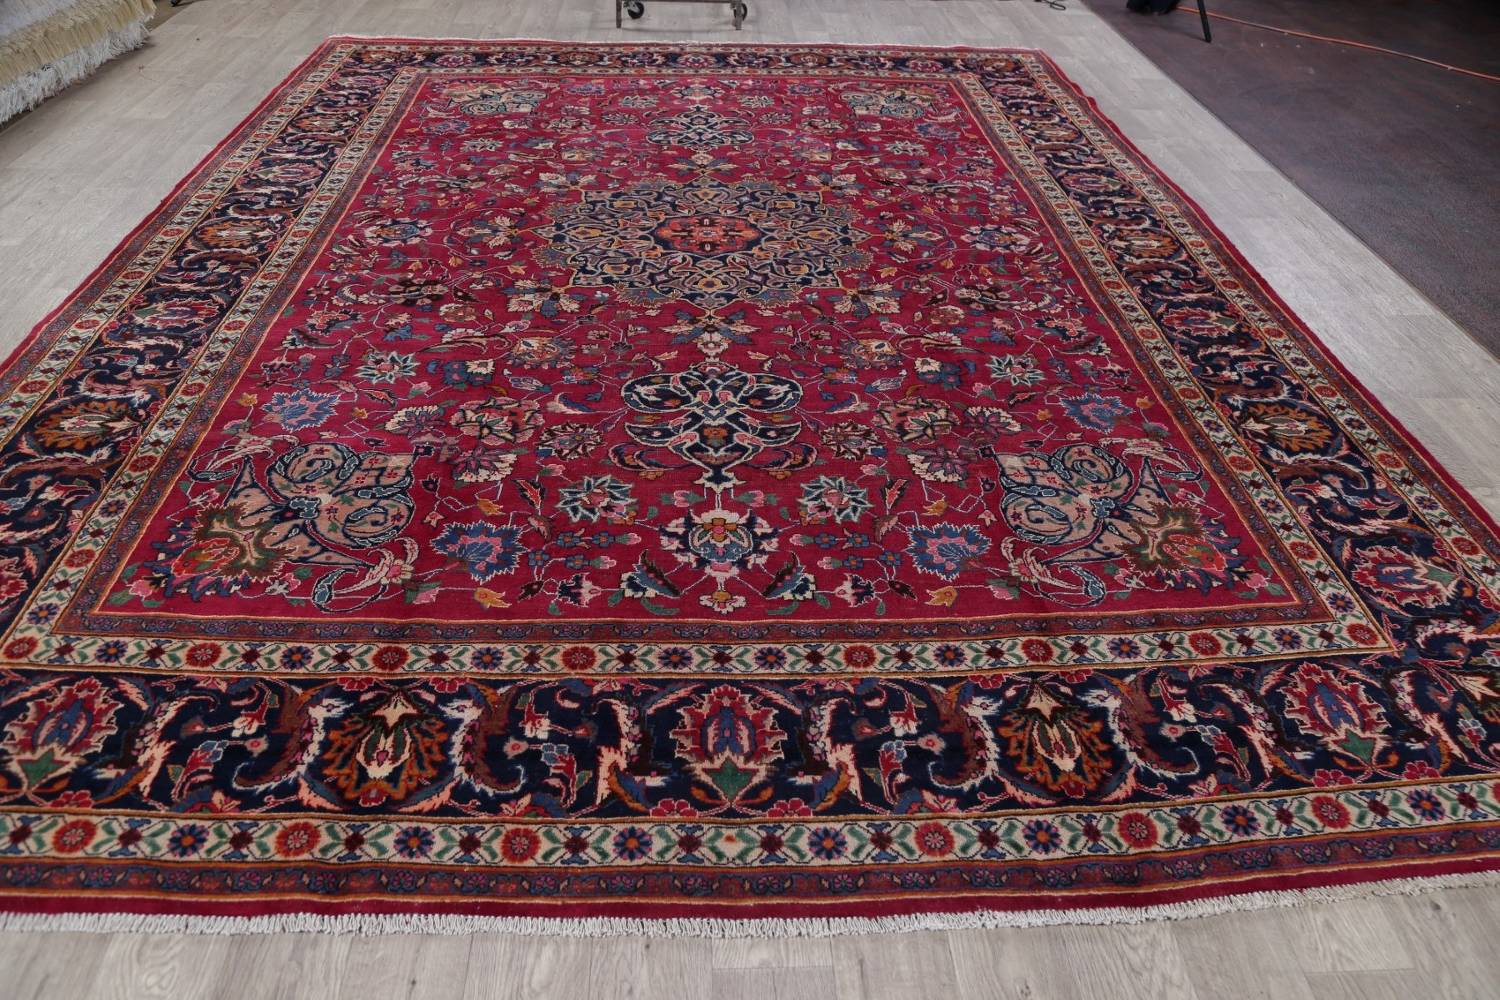 Antique Geometric Mashad Persian Hand-Knotted 10x13 Wool Area Rug image 14